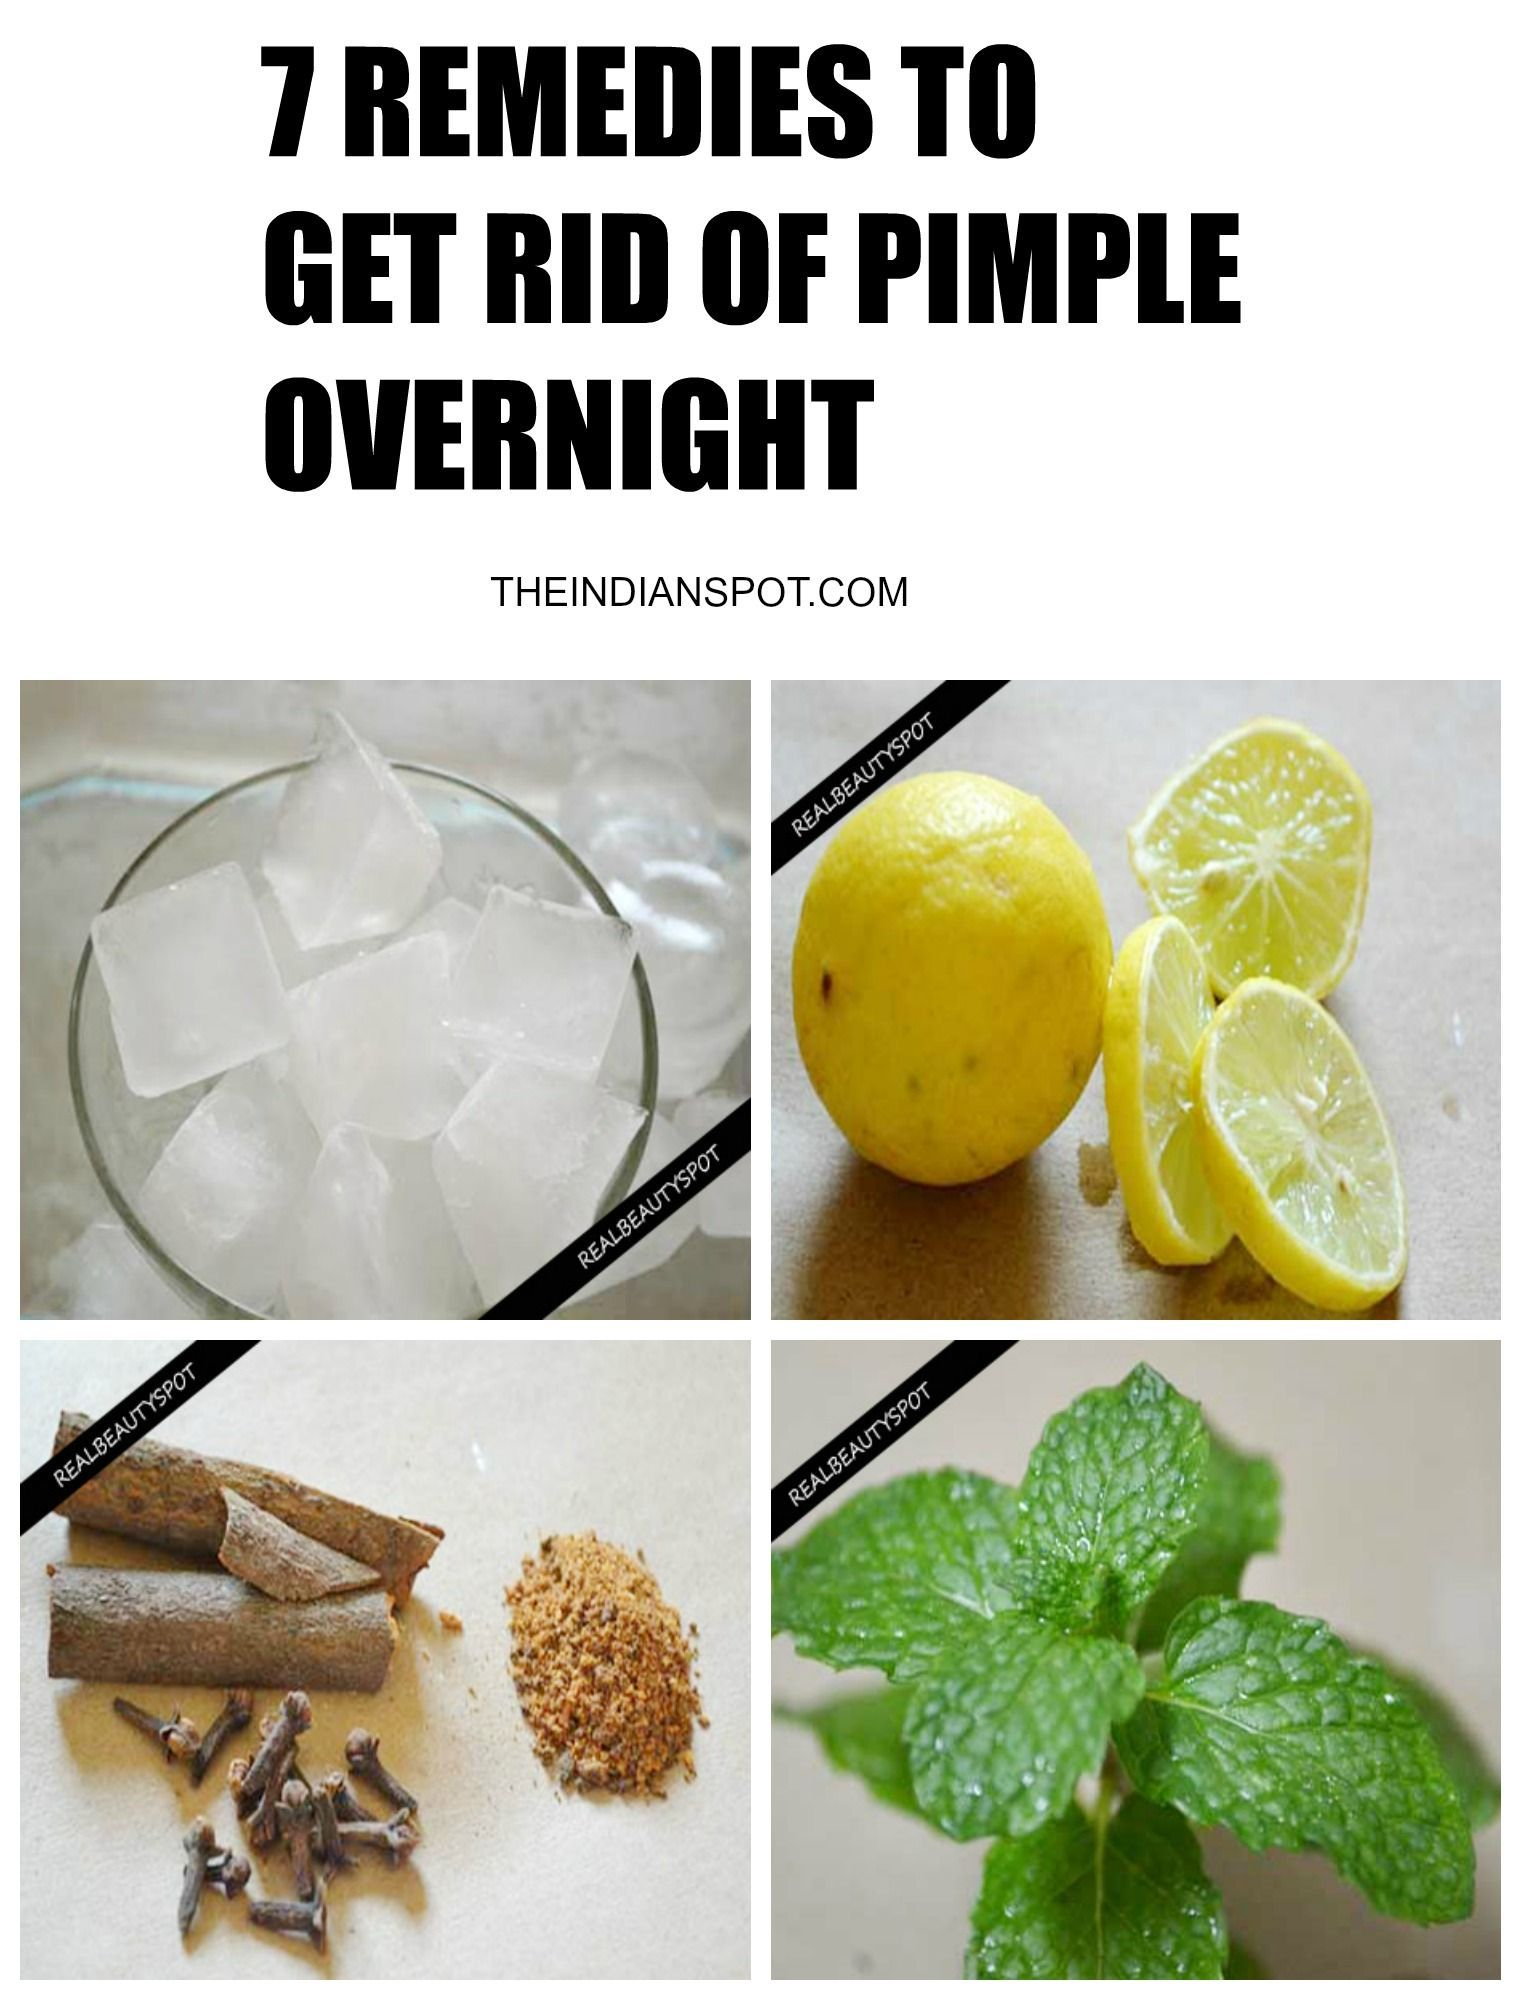 Natural ways to get rid of pimples overnight | How to get